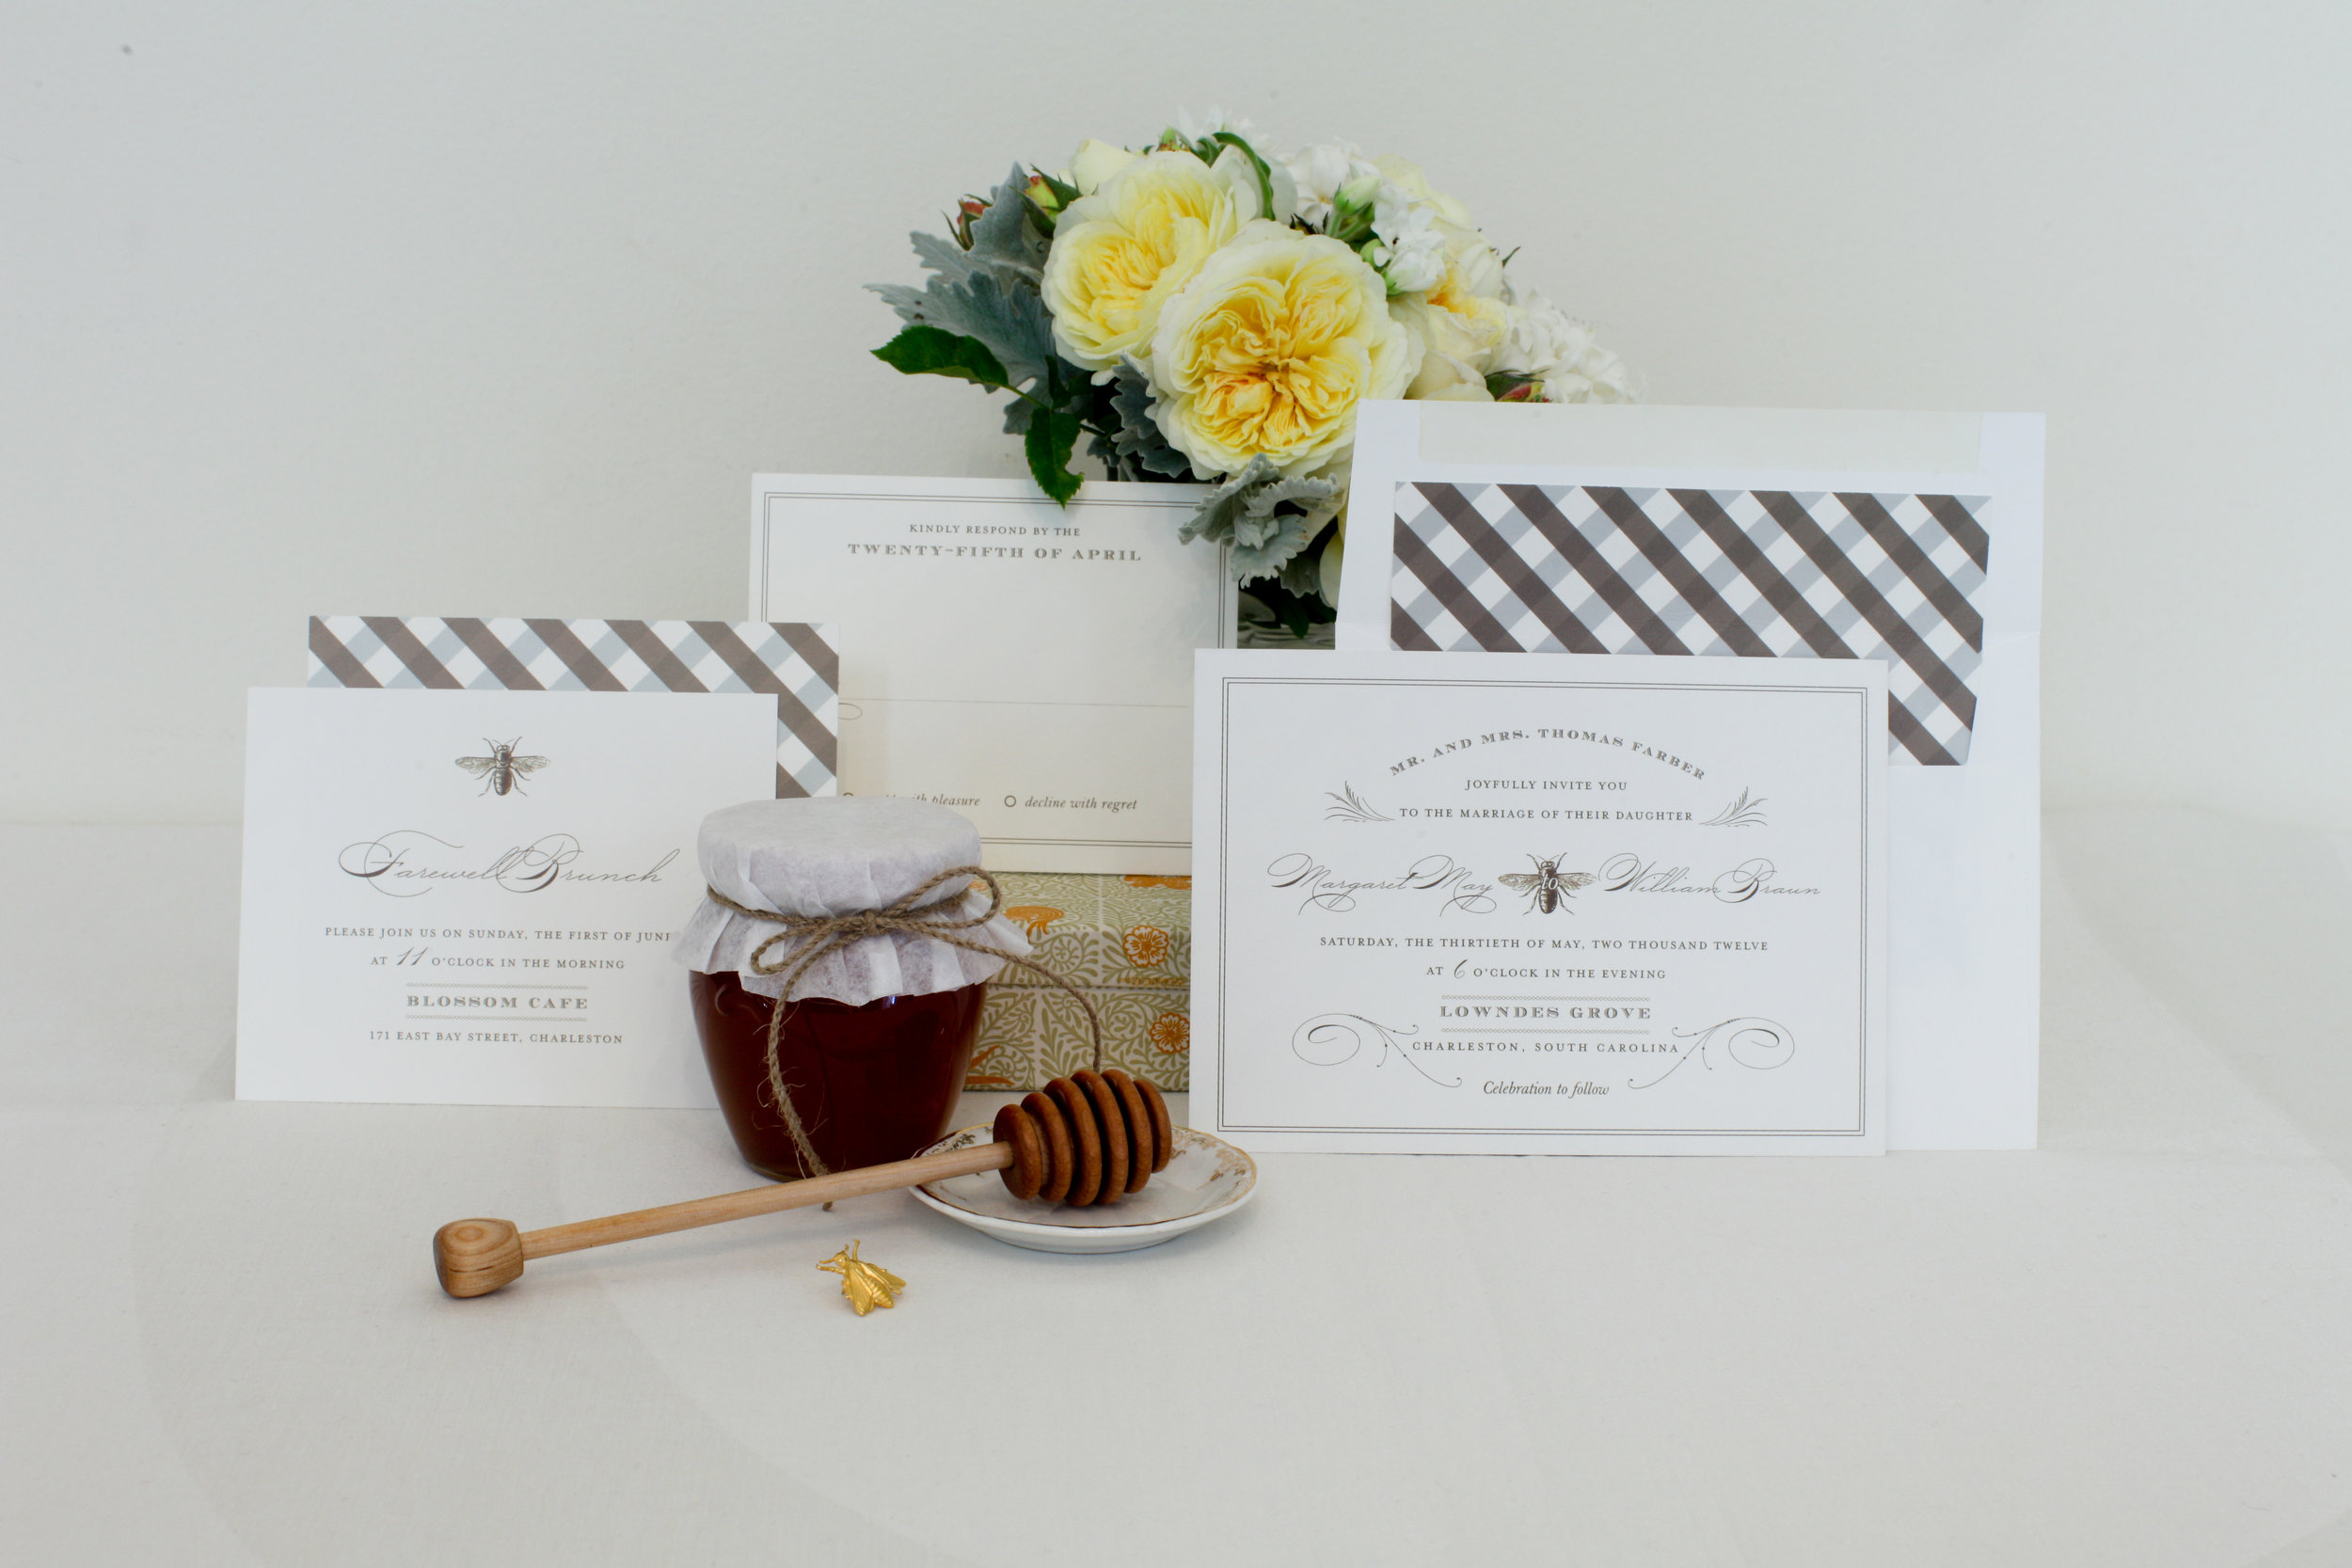 img_7281_brooke-bryand-photography_minted_snippetink_san-francisco-stationary-photography.jpg